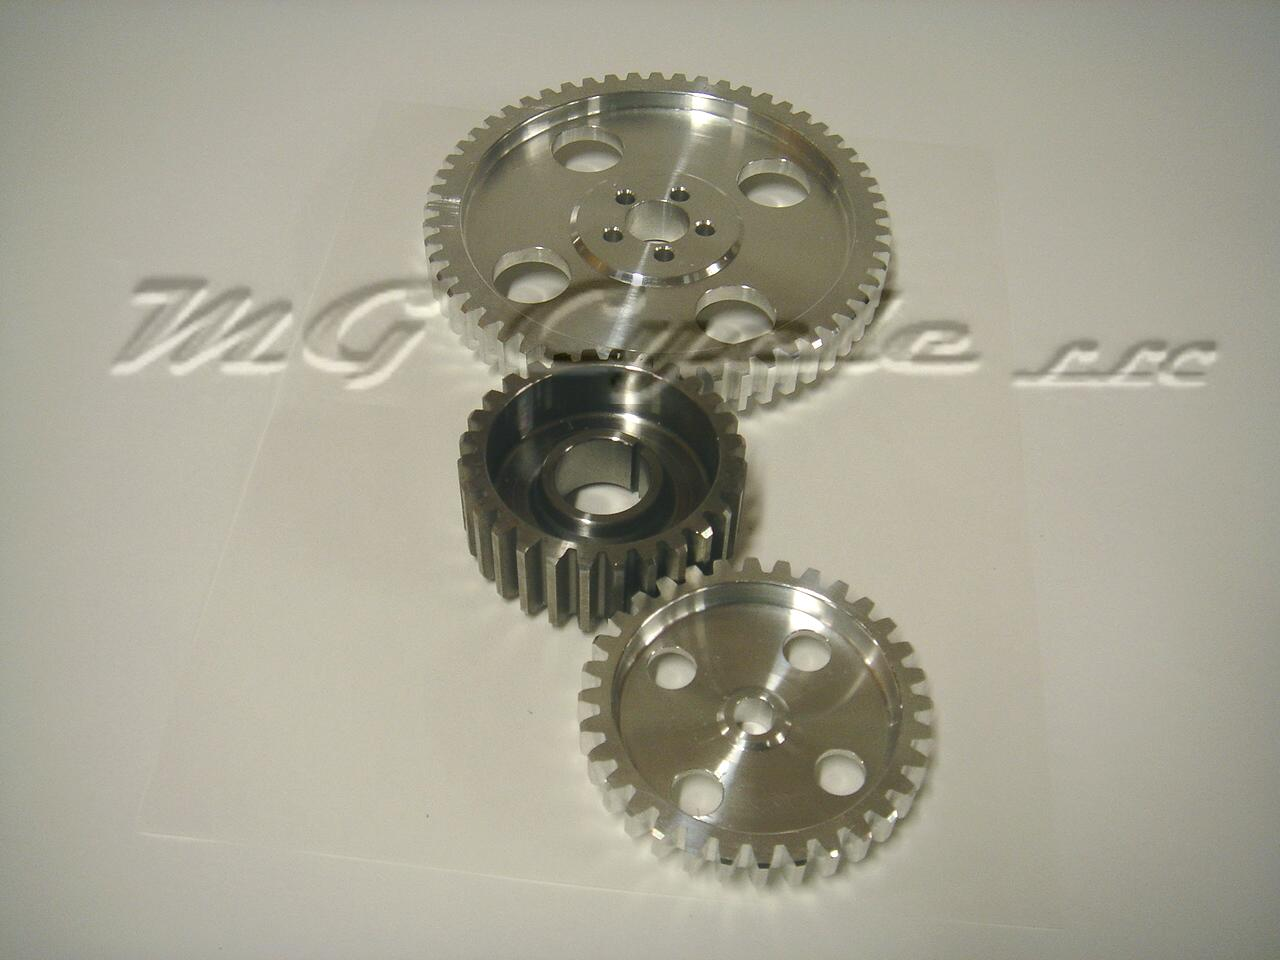 timing gear set straight cut steel driving gear Special Order